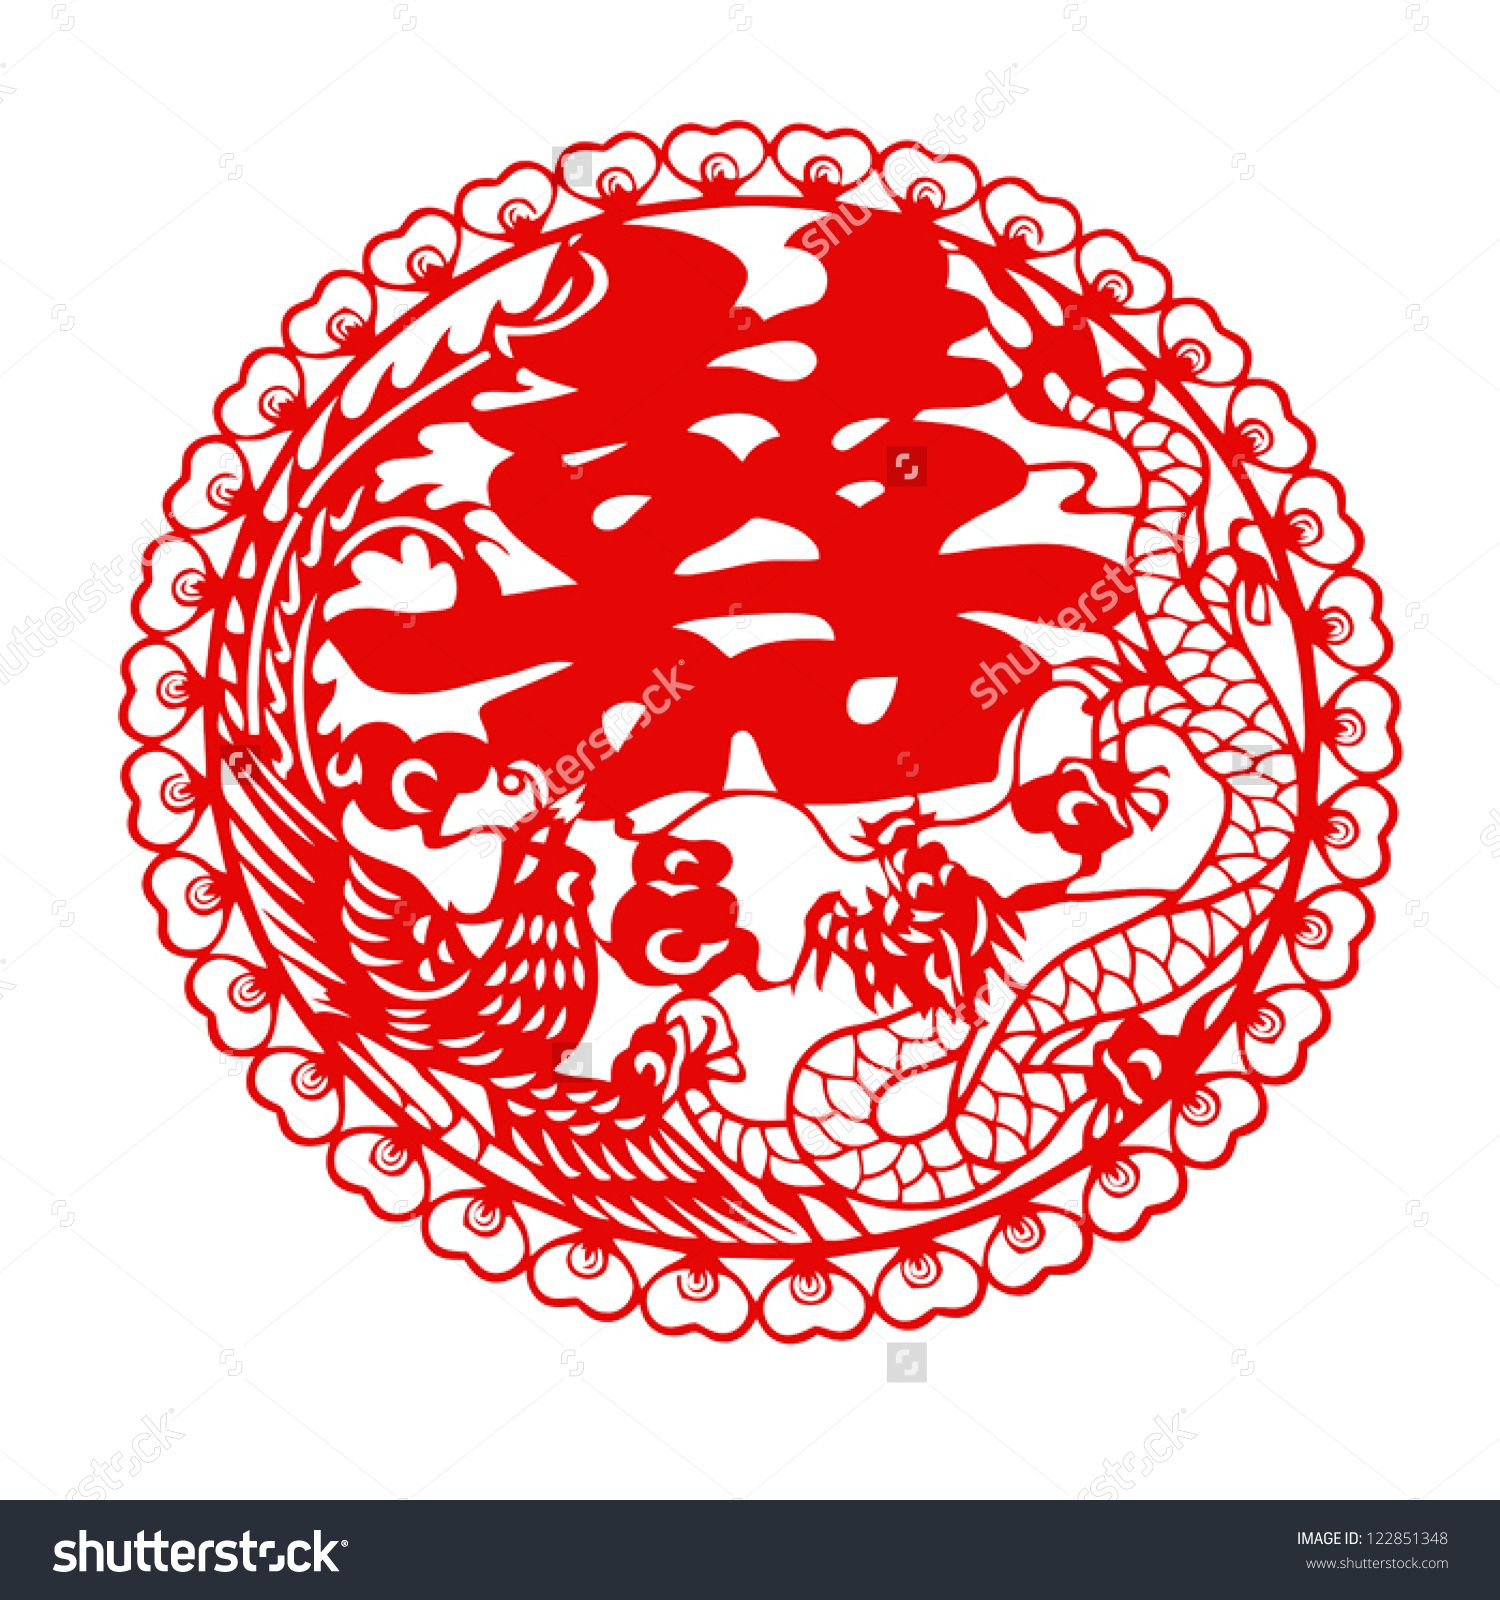 Chinese Symbol Of Double Happiness With Dragon And Phoenix Vector